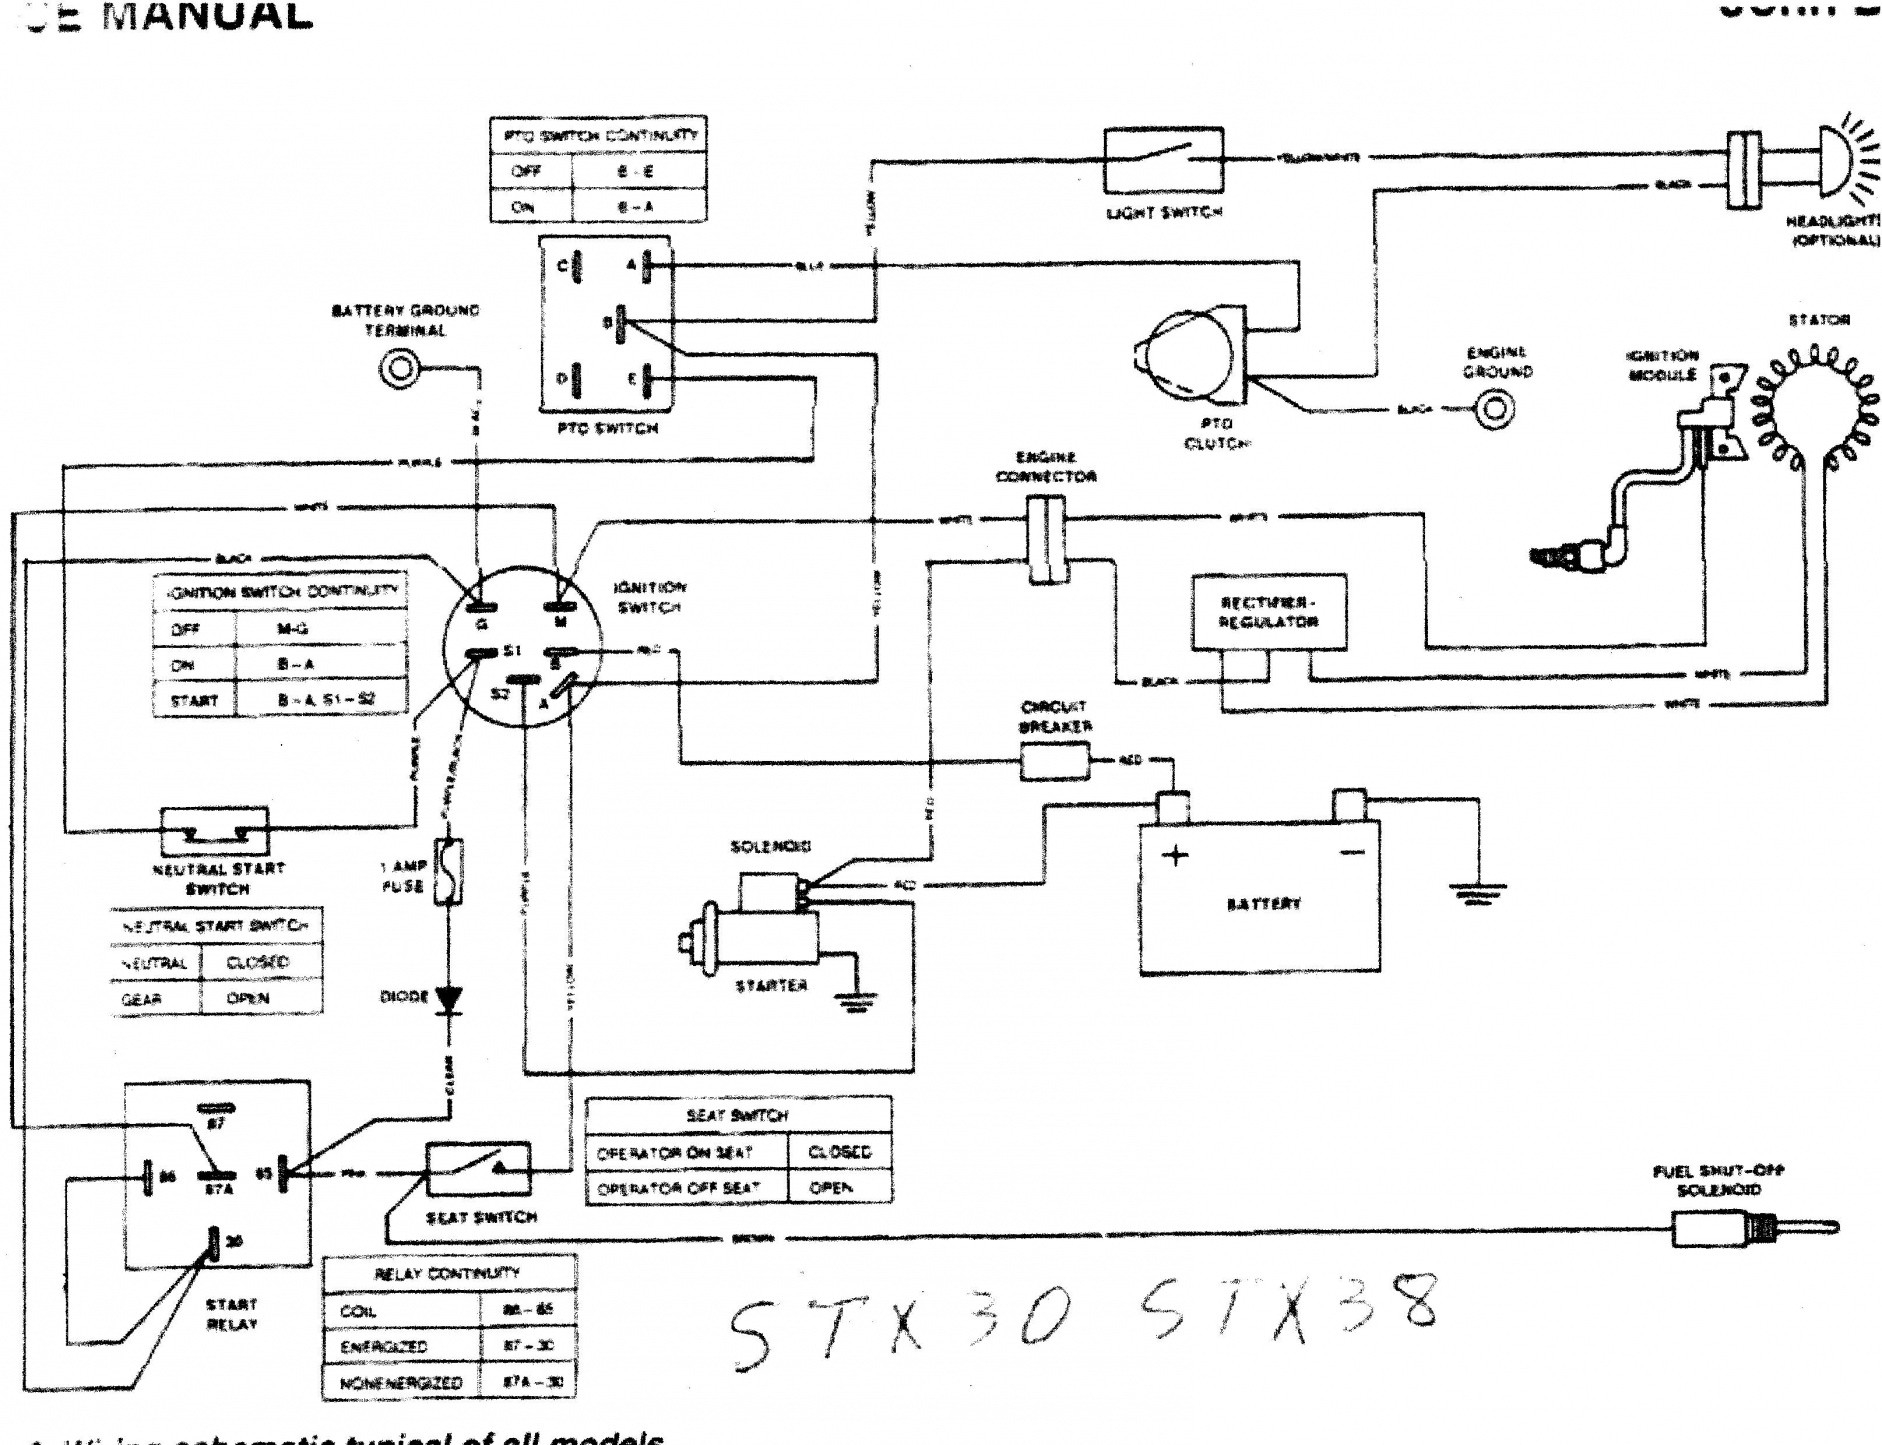 John Deere 300 Wiring Diagrams | Wiring Diagram on